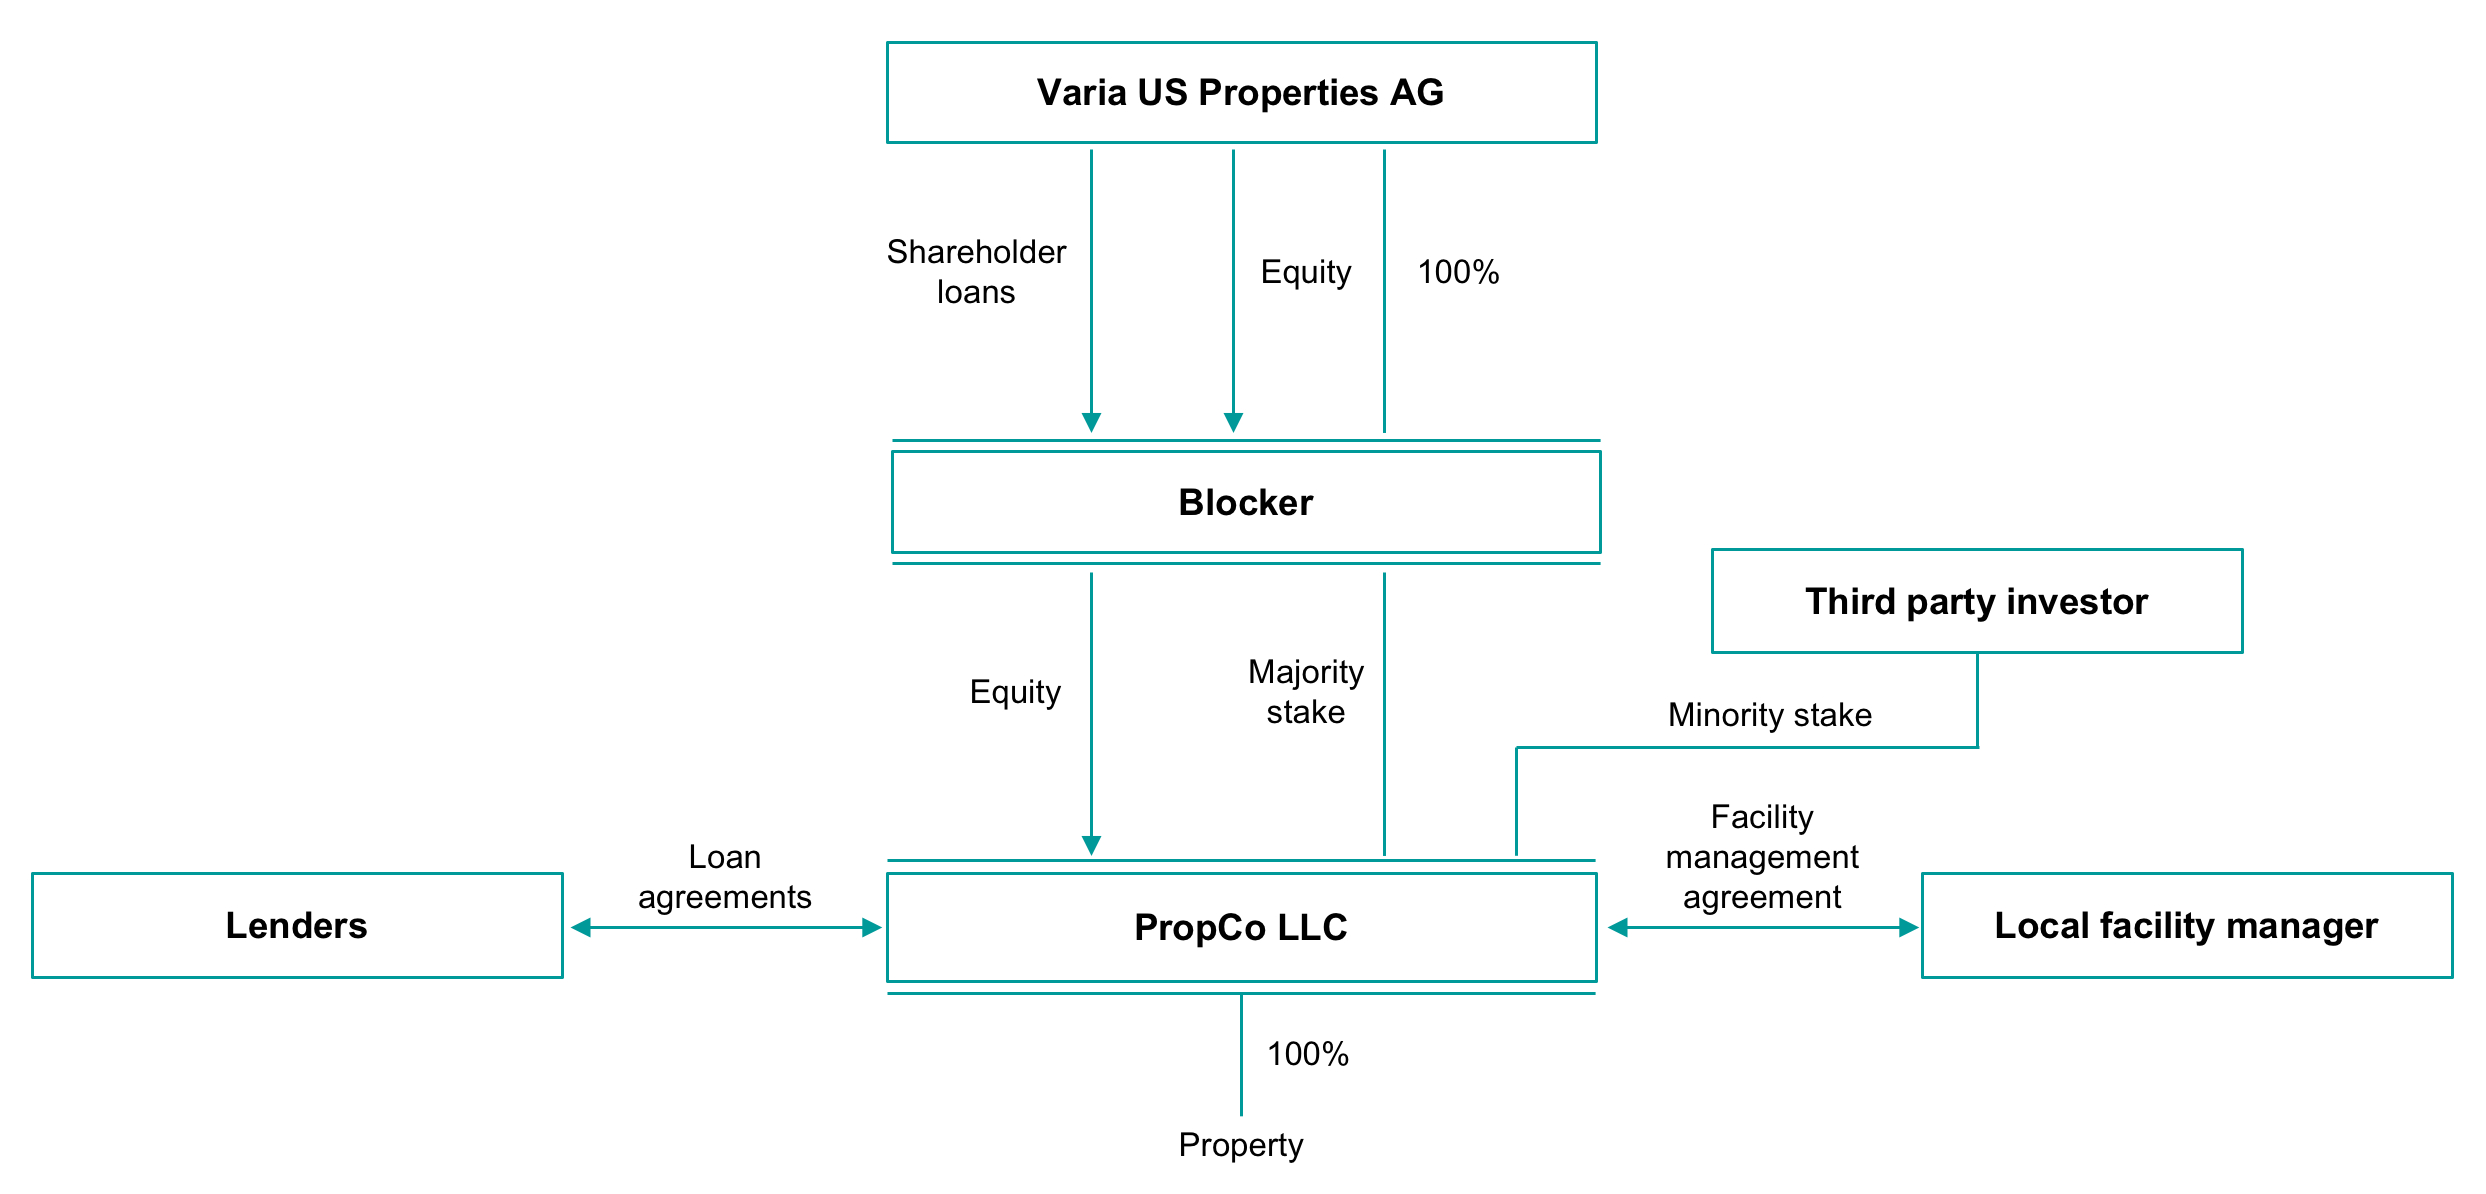 Investment Management Agreement Company Background Varia Us Properties